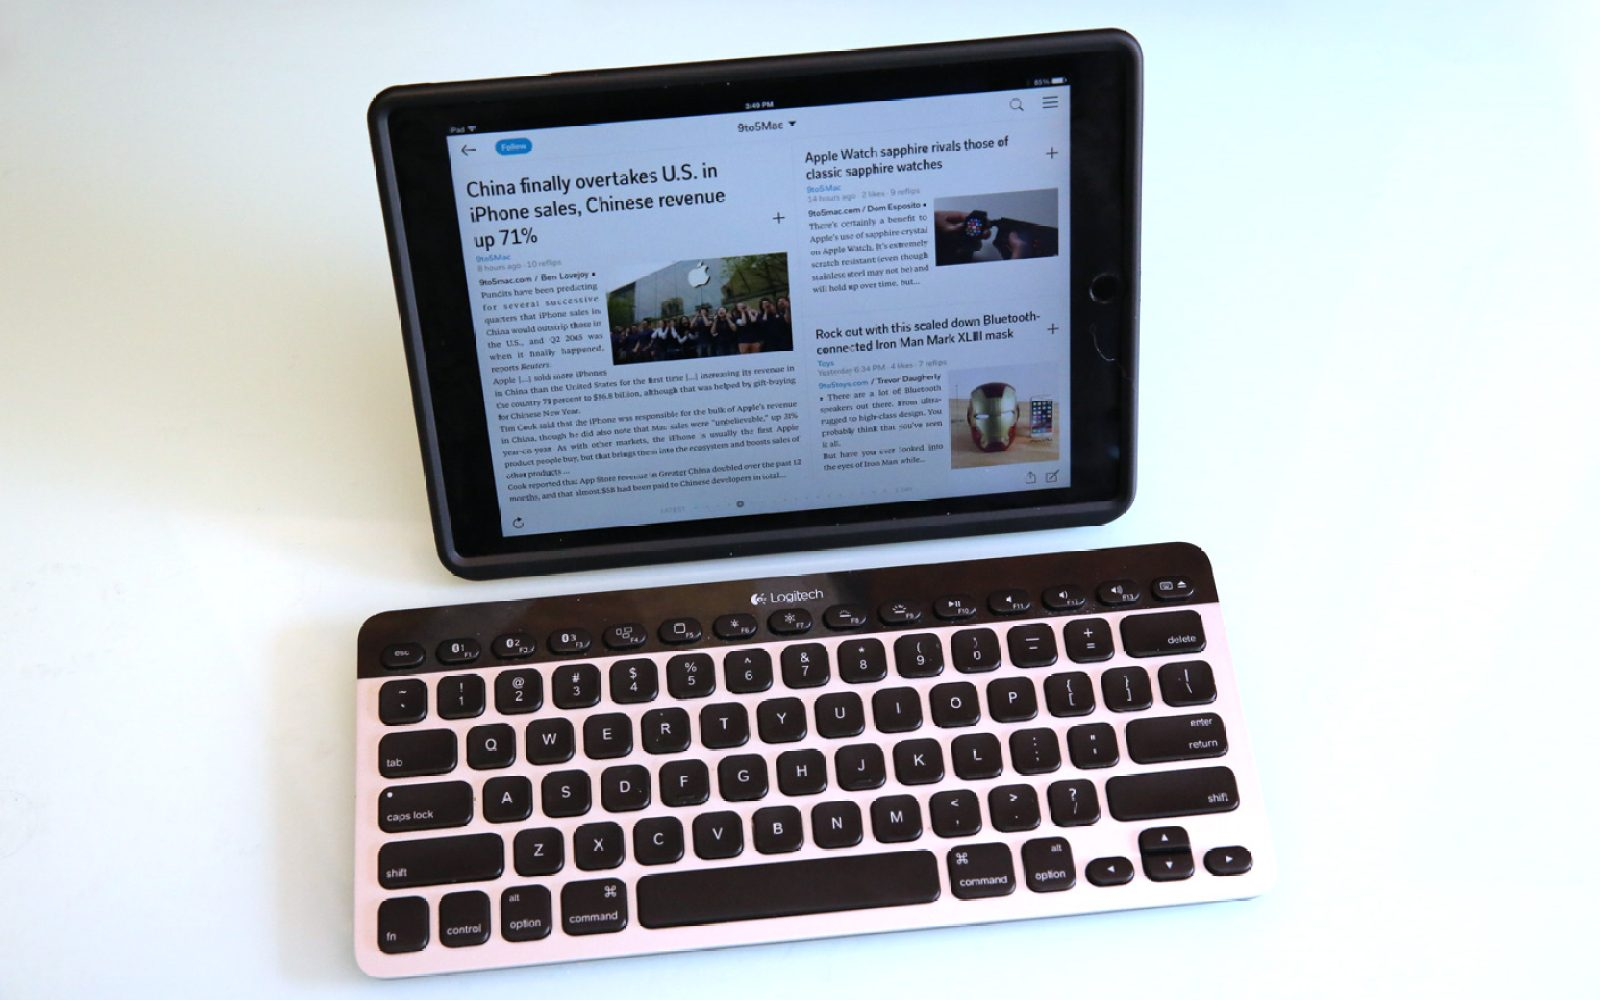 The best Mac and iPad keyboards | 9to5Mac